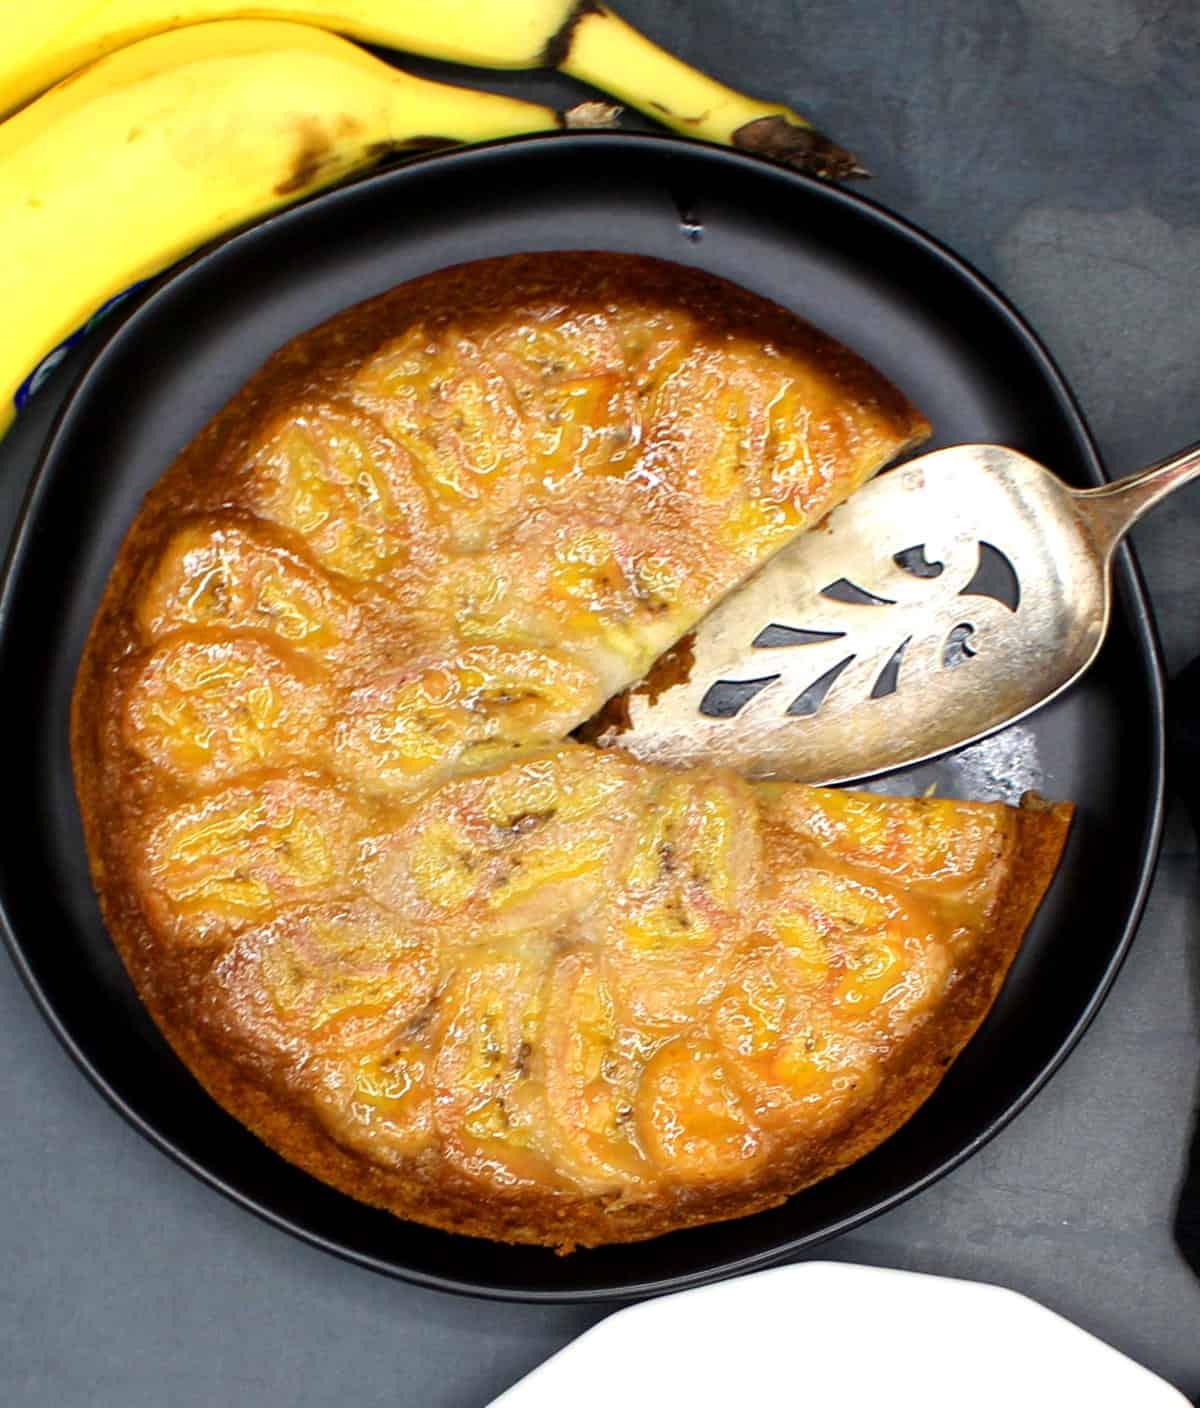 A rich, golden banana upside down cake with a single slice removed, a silver serving spoon and bananas on gray background.